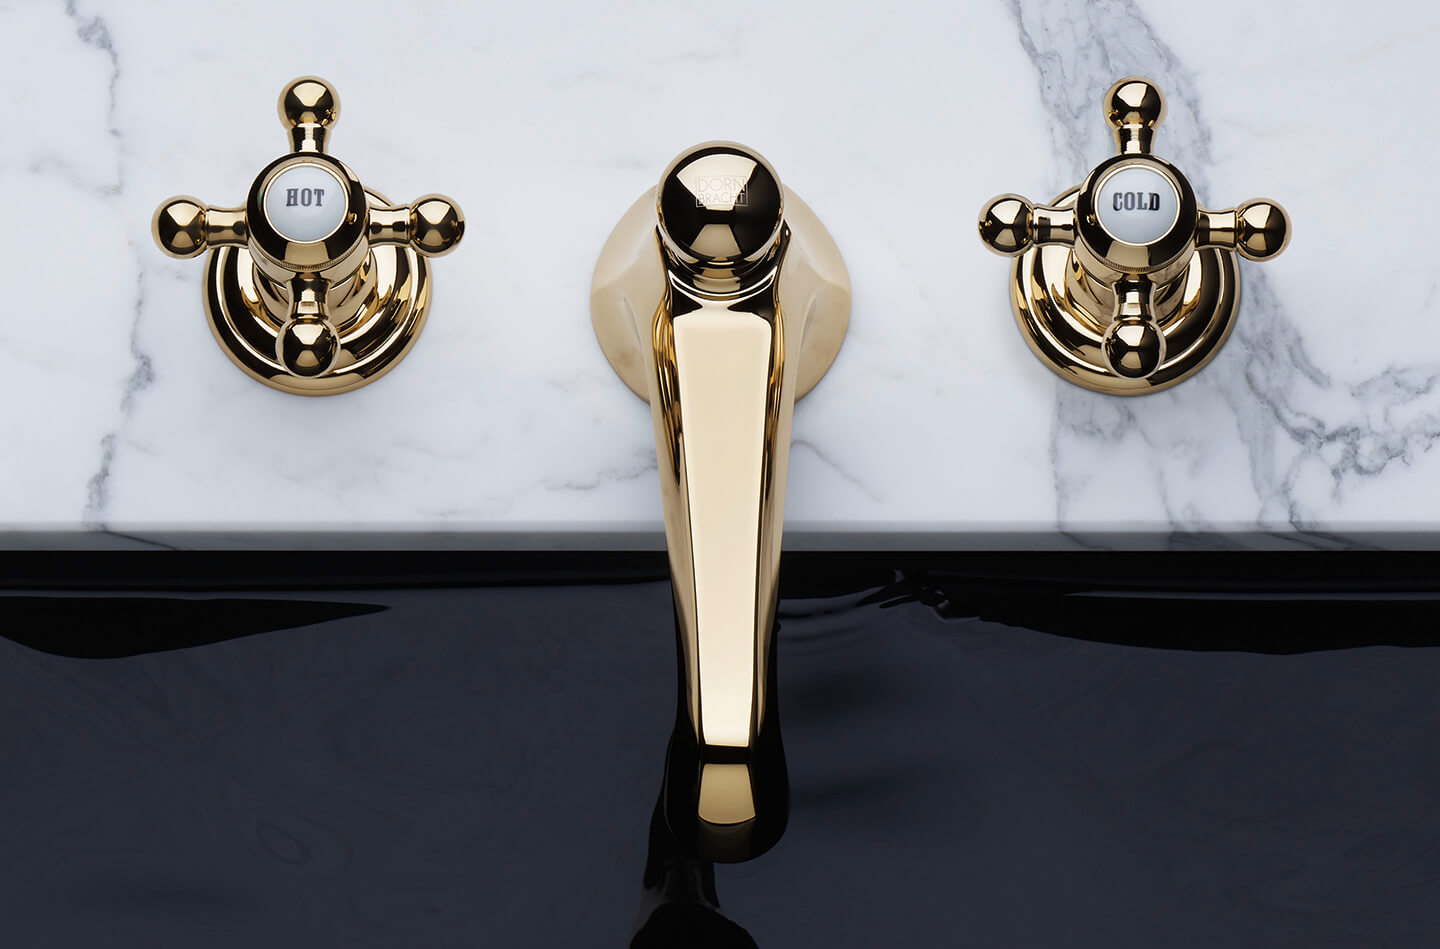 Dornbracht Madison Durabrass Luxury Bathroom Inspiration